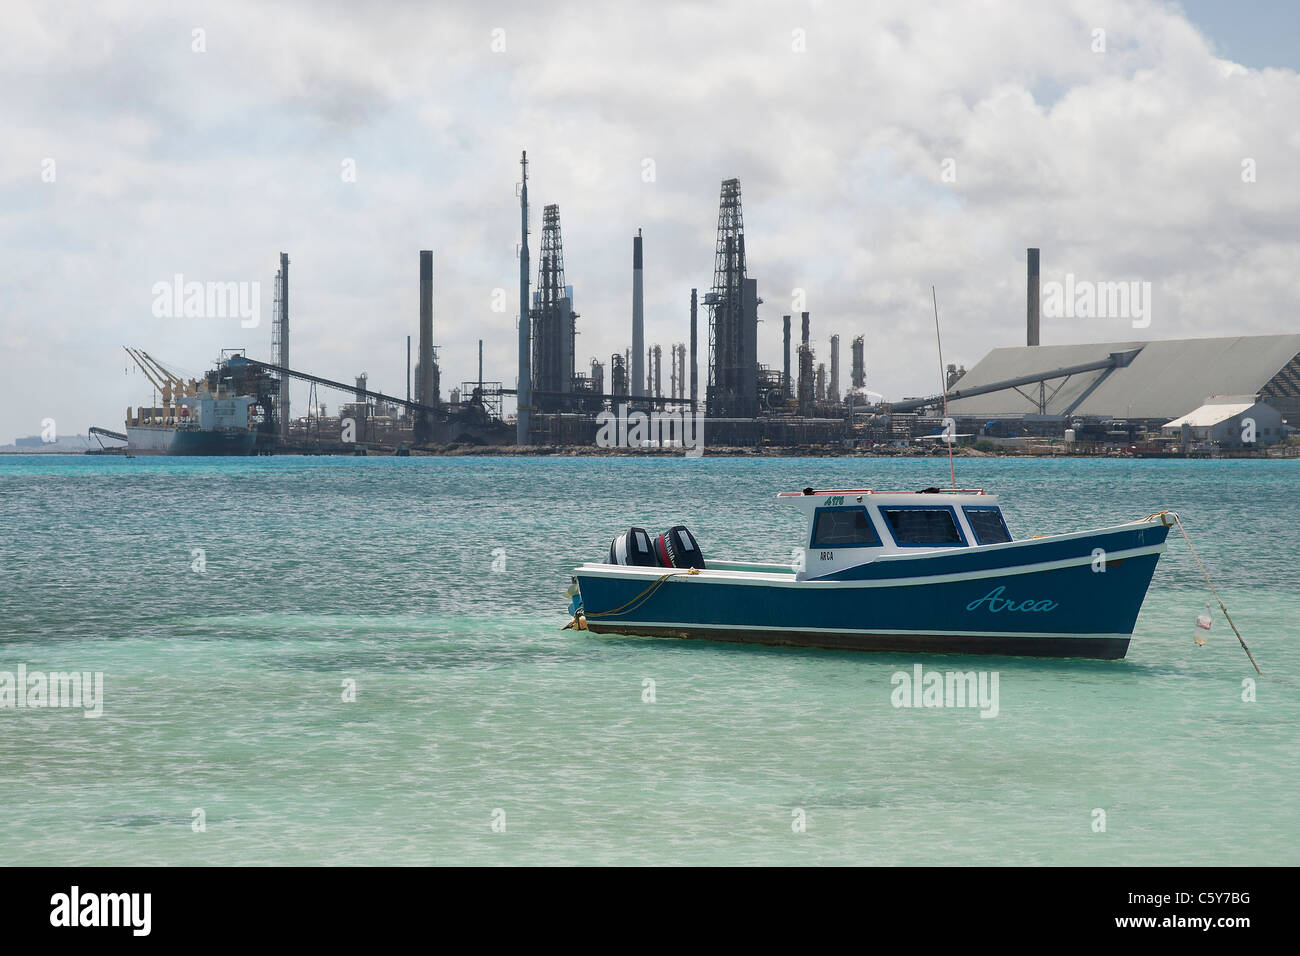 Fishing Boat in a bay with the Valero Oil Refinery in the ...